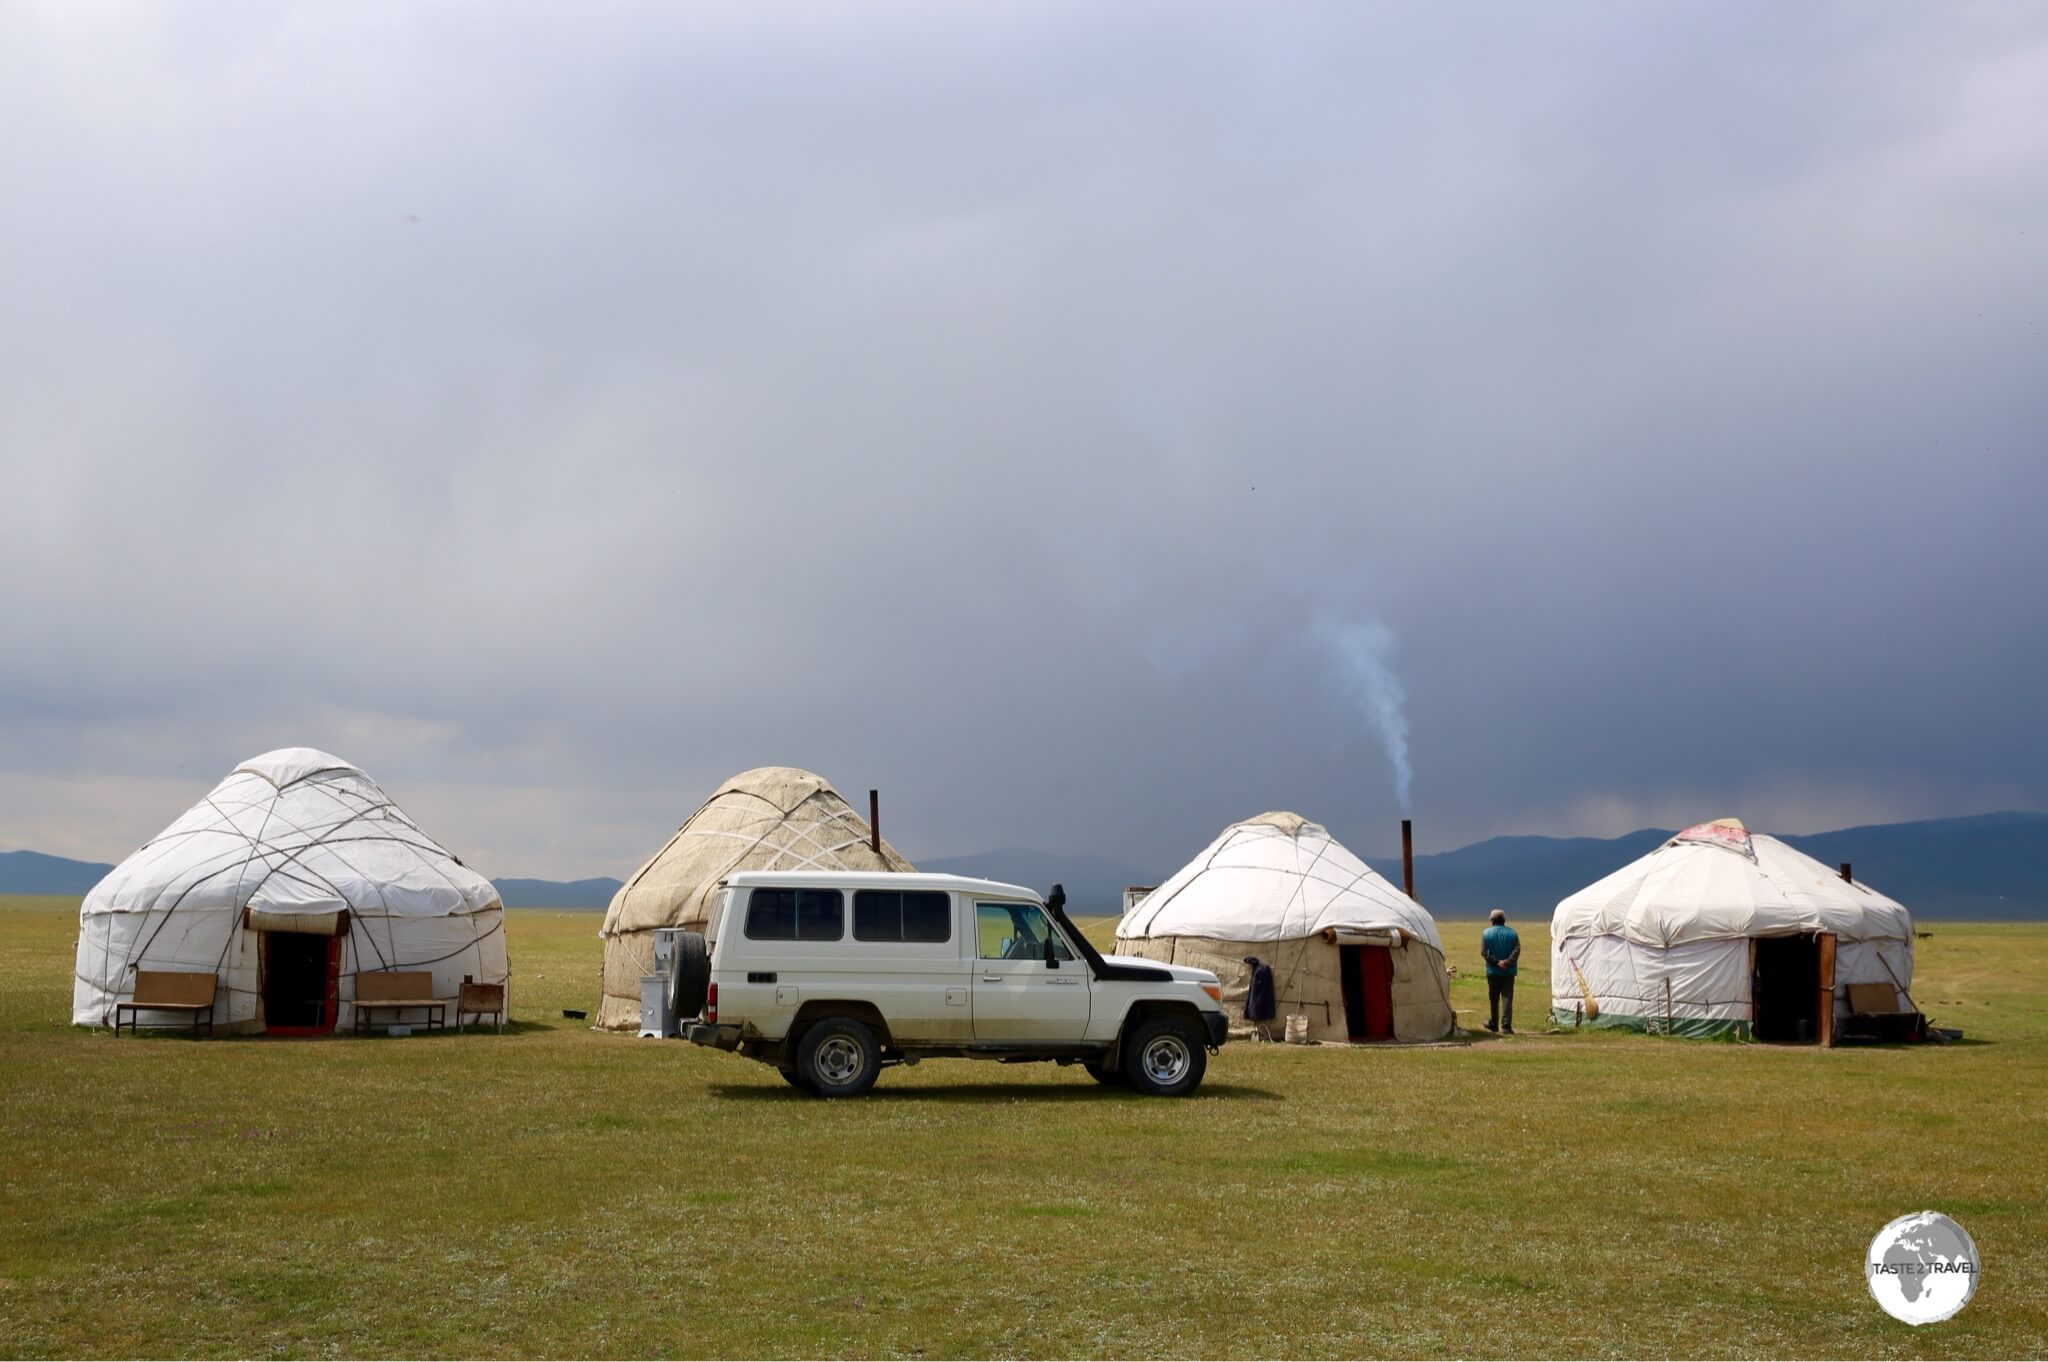 With a rental car, the whole country is accessible, including the remote yurt camps at lake Son-Kul where parking is never a problem.